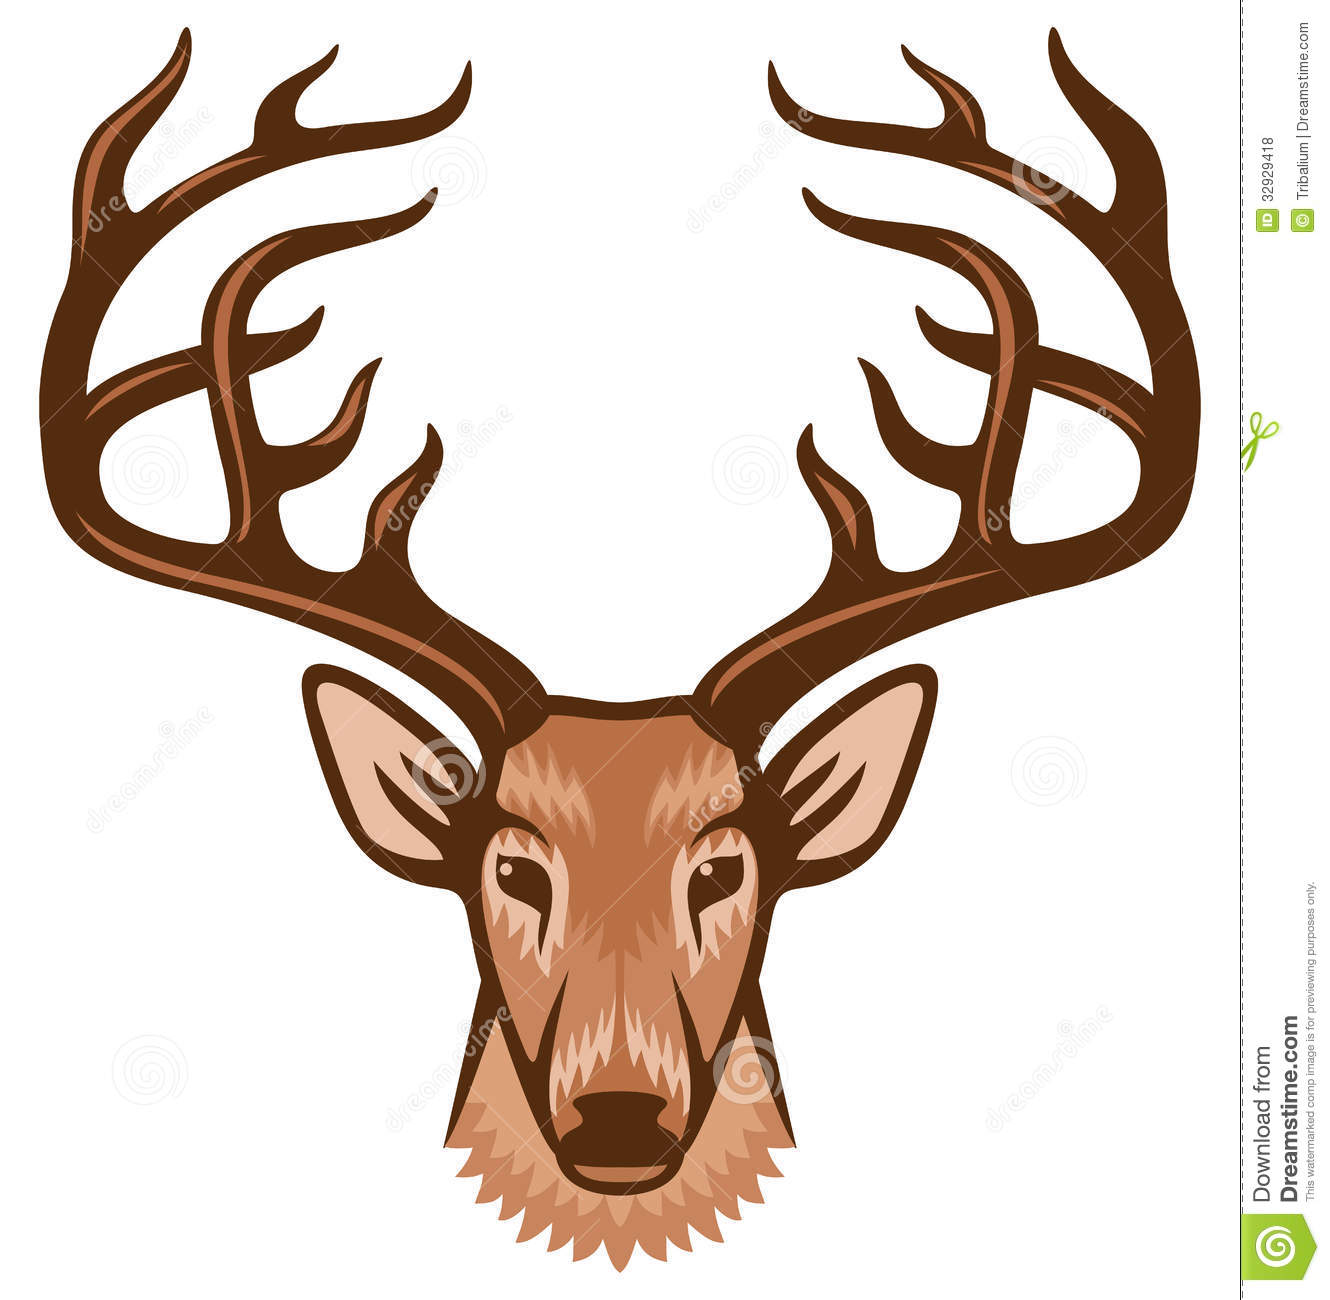 Deer Head Royalty Free Stock Photos - Image: 32929418